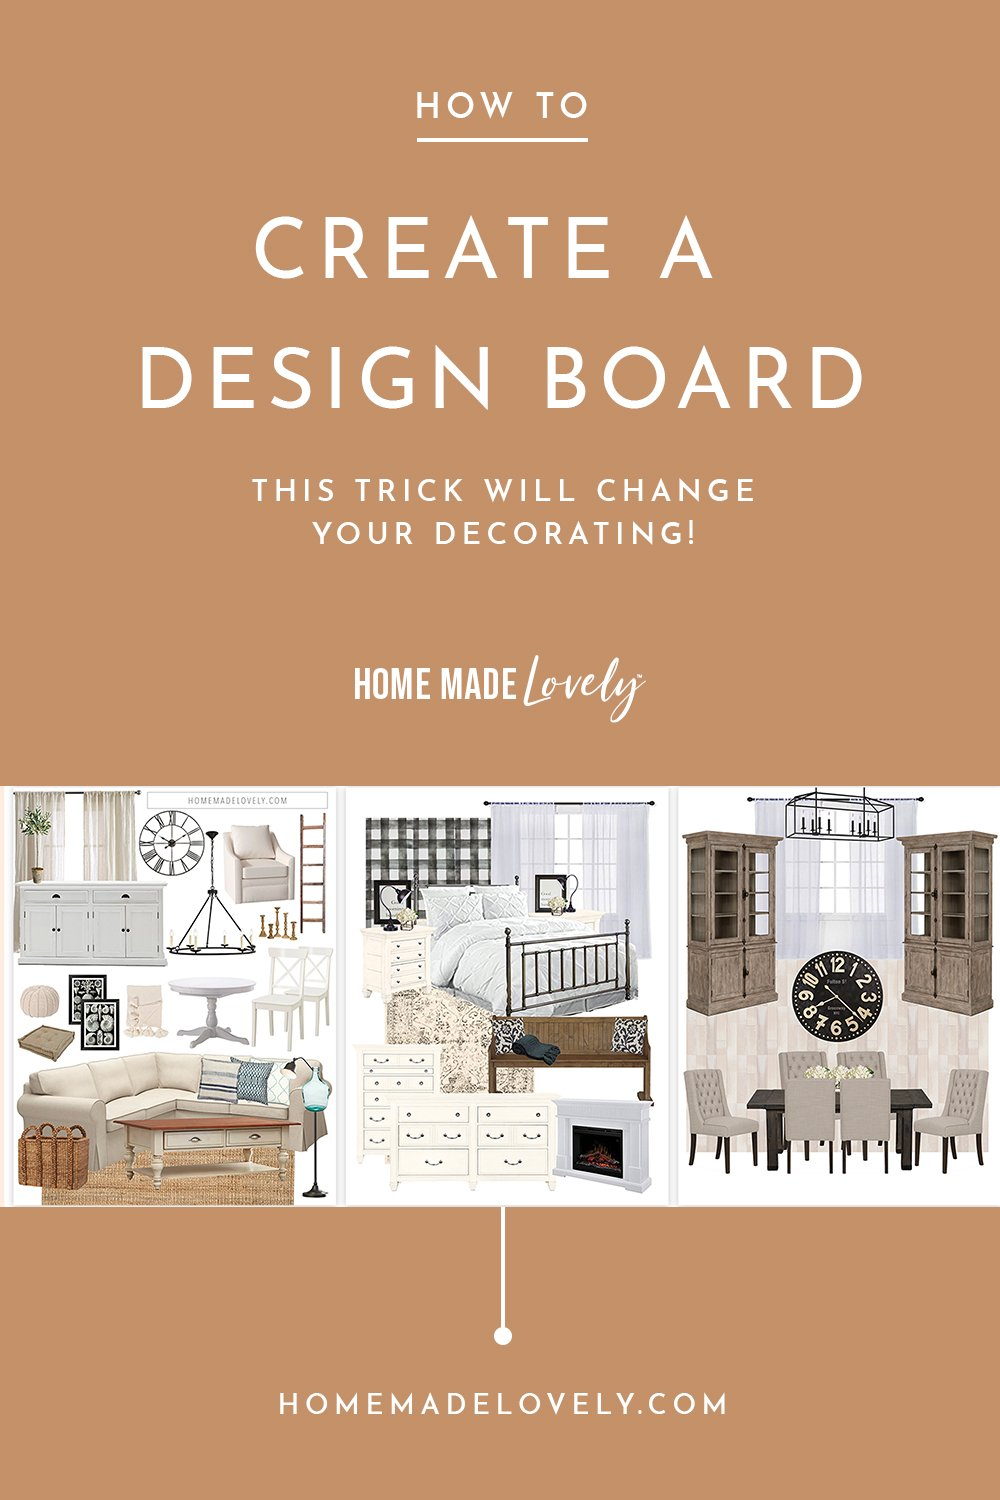 how to create a design board text overlay with design board examples